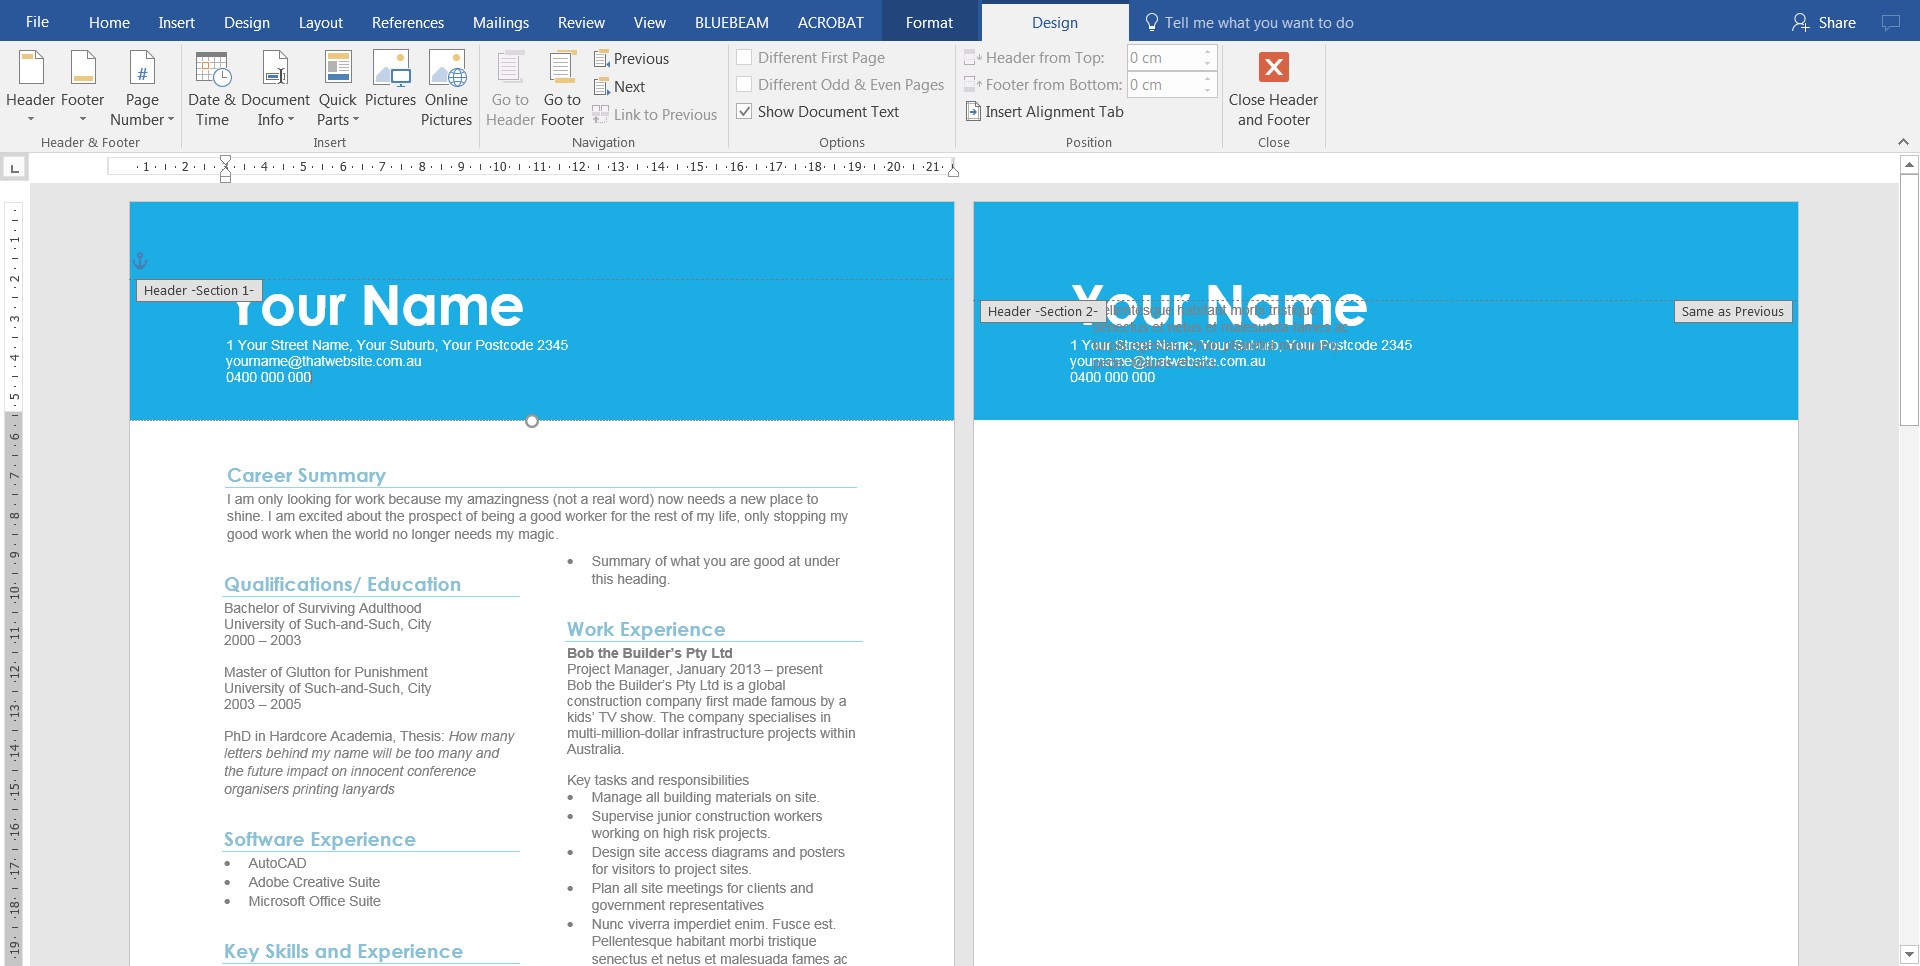 3. Add text to header of resume CV